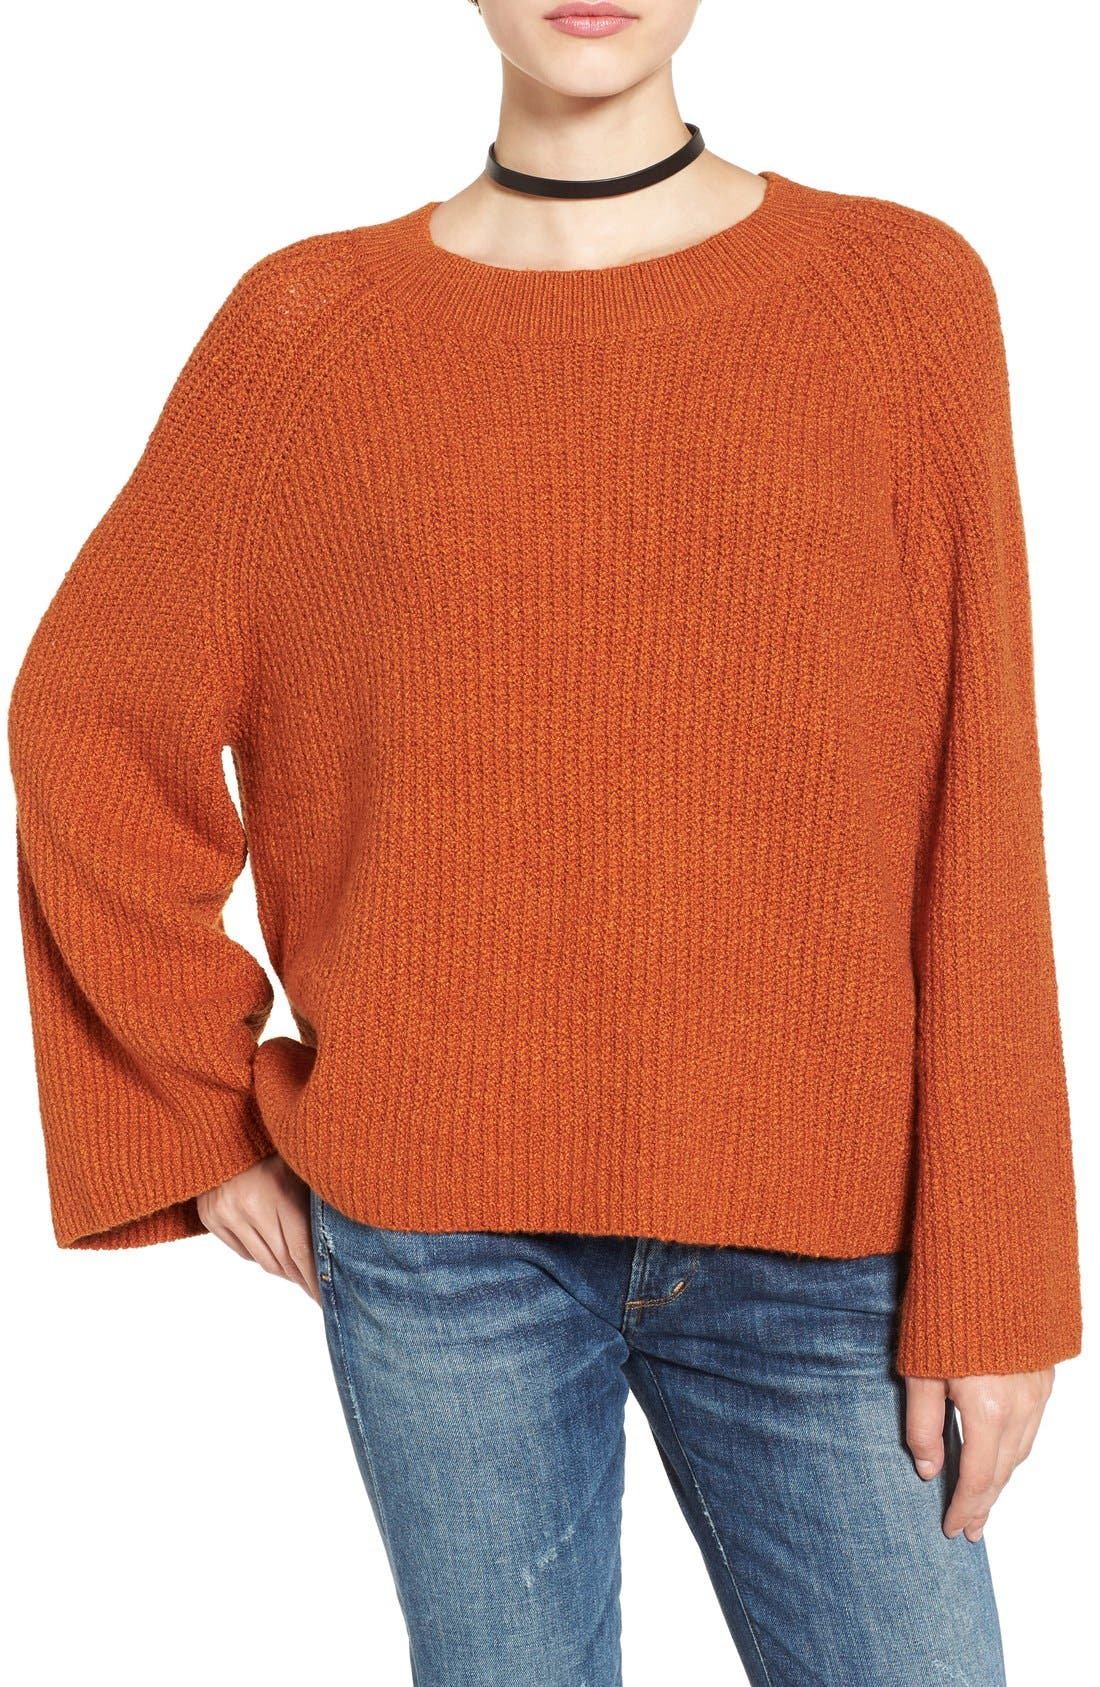 Alternate Image 1 Selected - BP. Knit Bell Sleeve Pullover